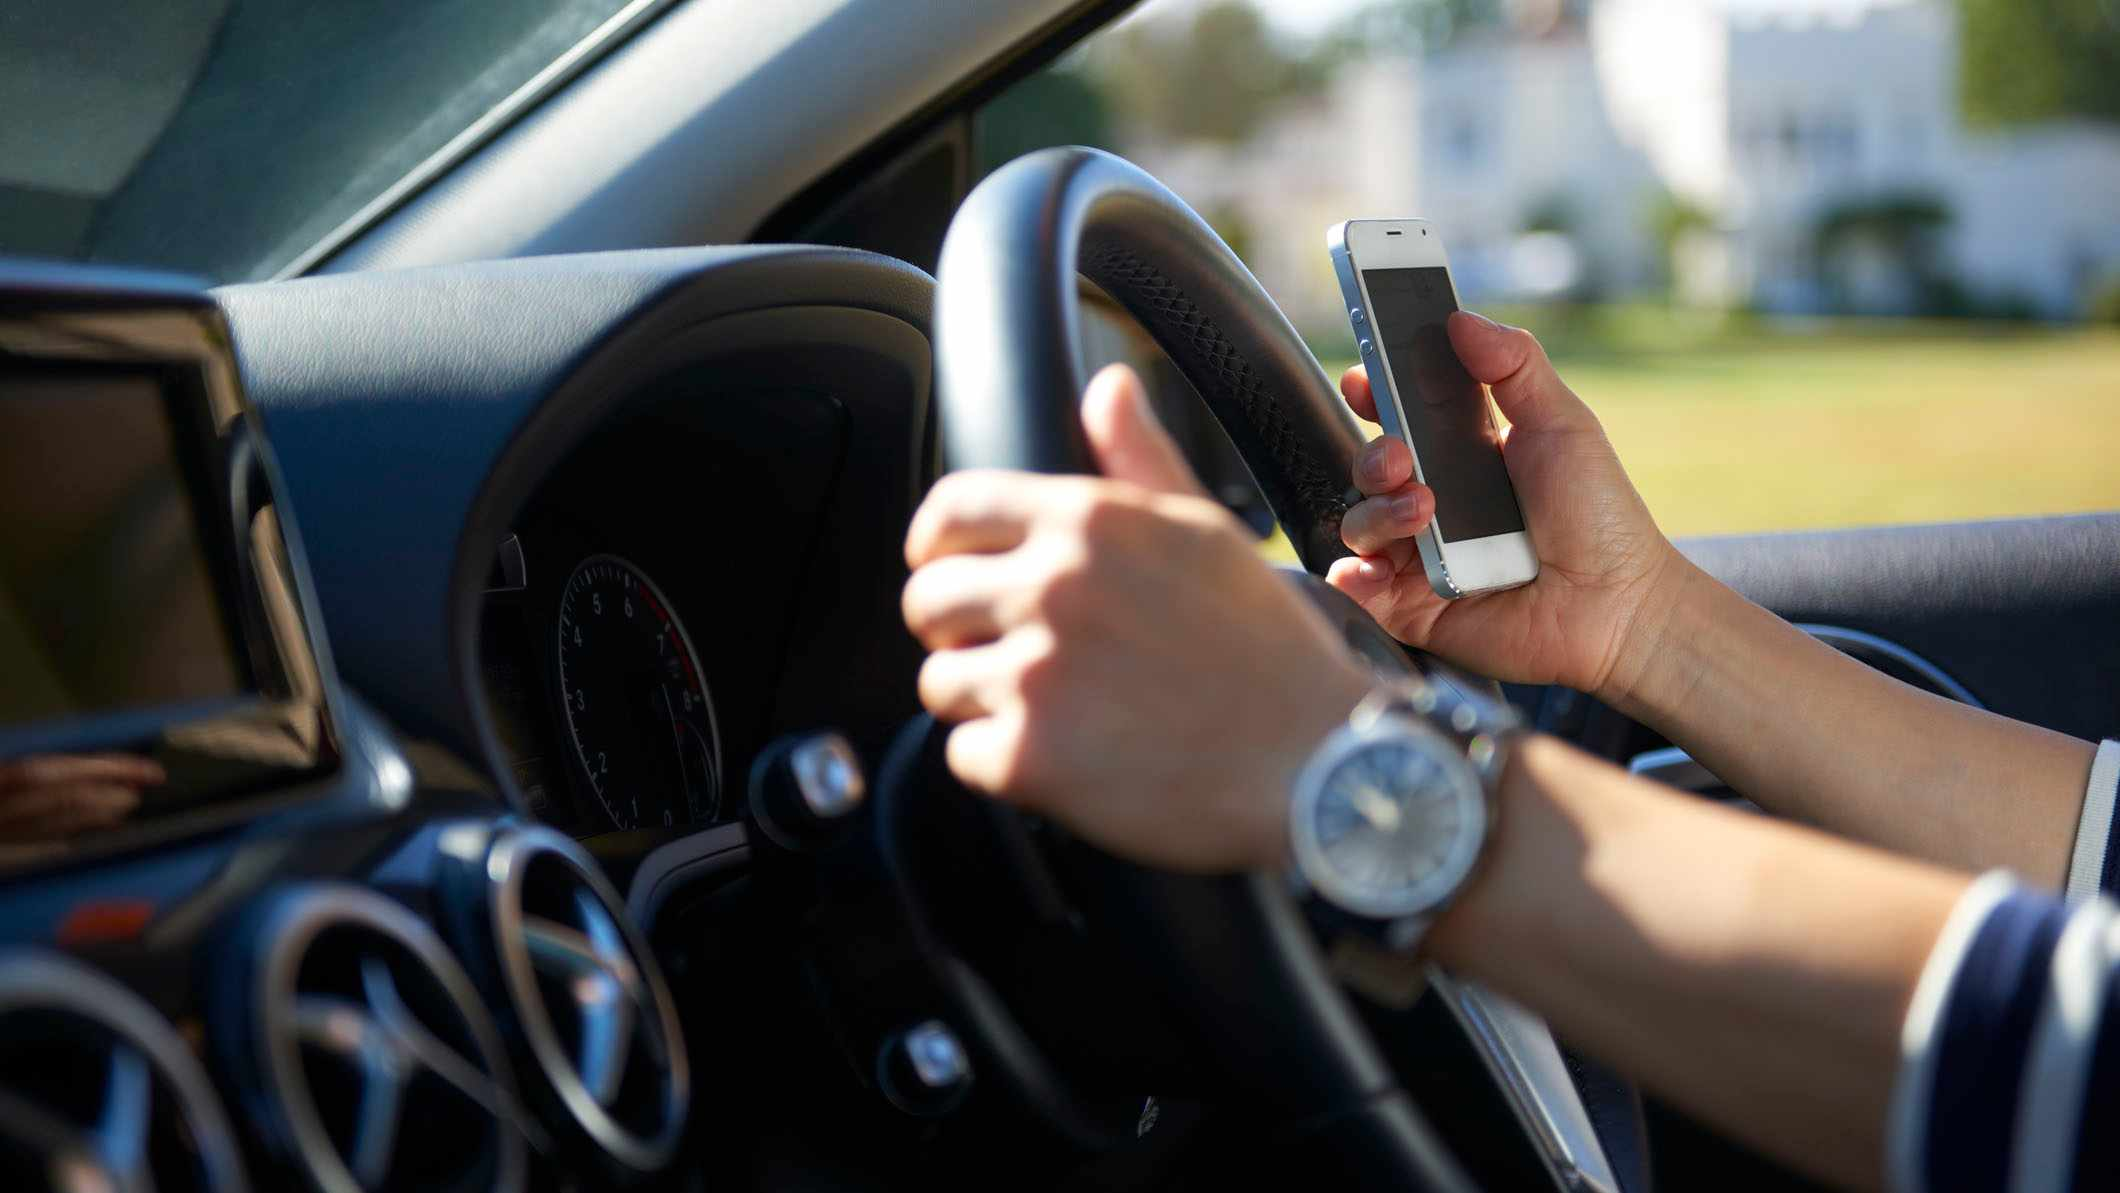 Could a 'drive safe' mode help reduce driver distraction?